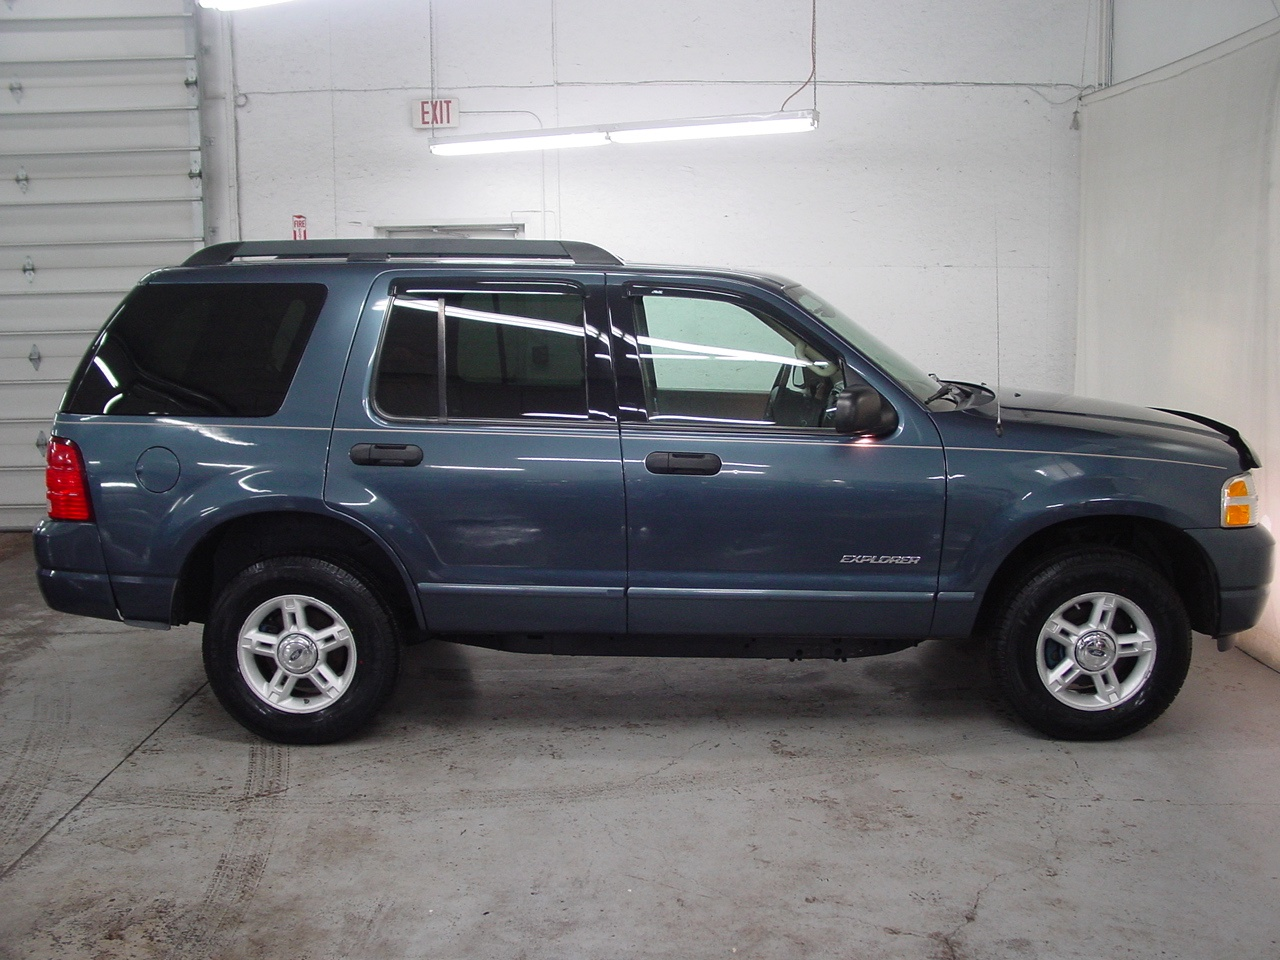 Ford Explorer On Rims >> 2005 Ford Explorer XLT - Biscayne Auto Sales | Pre-owned Dealership | Ontario, NY